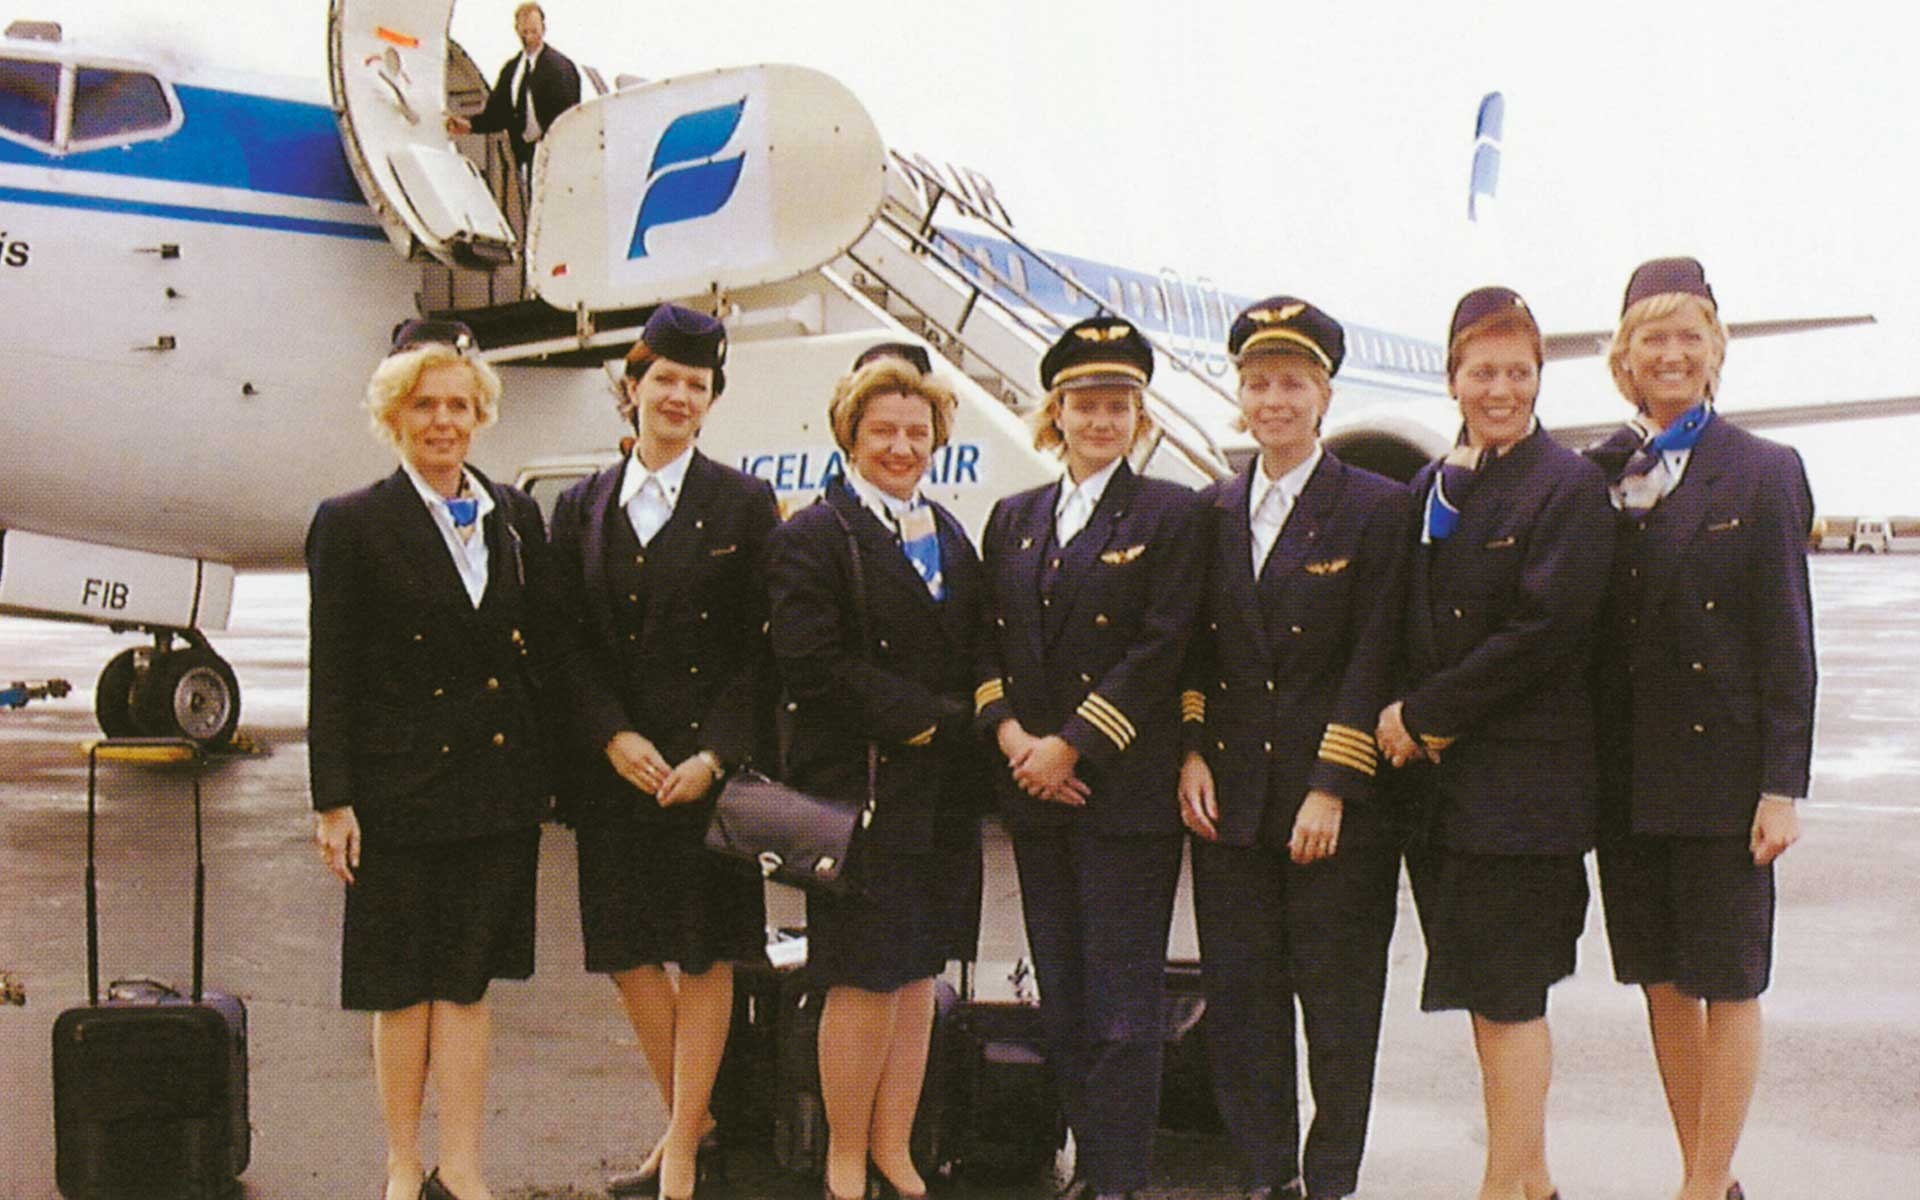 a group of female Icelandair staff wearing full uniform standing in front of an Icelandair airplane